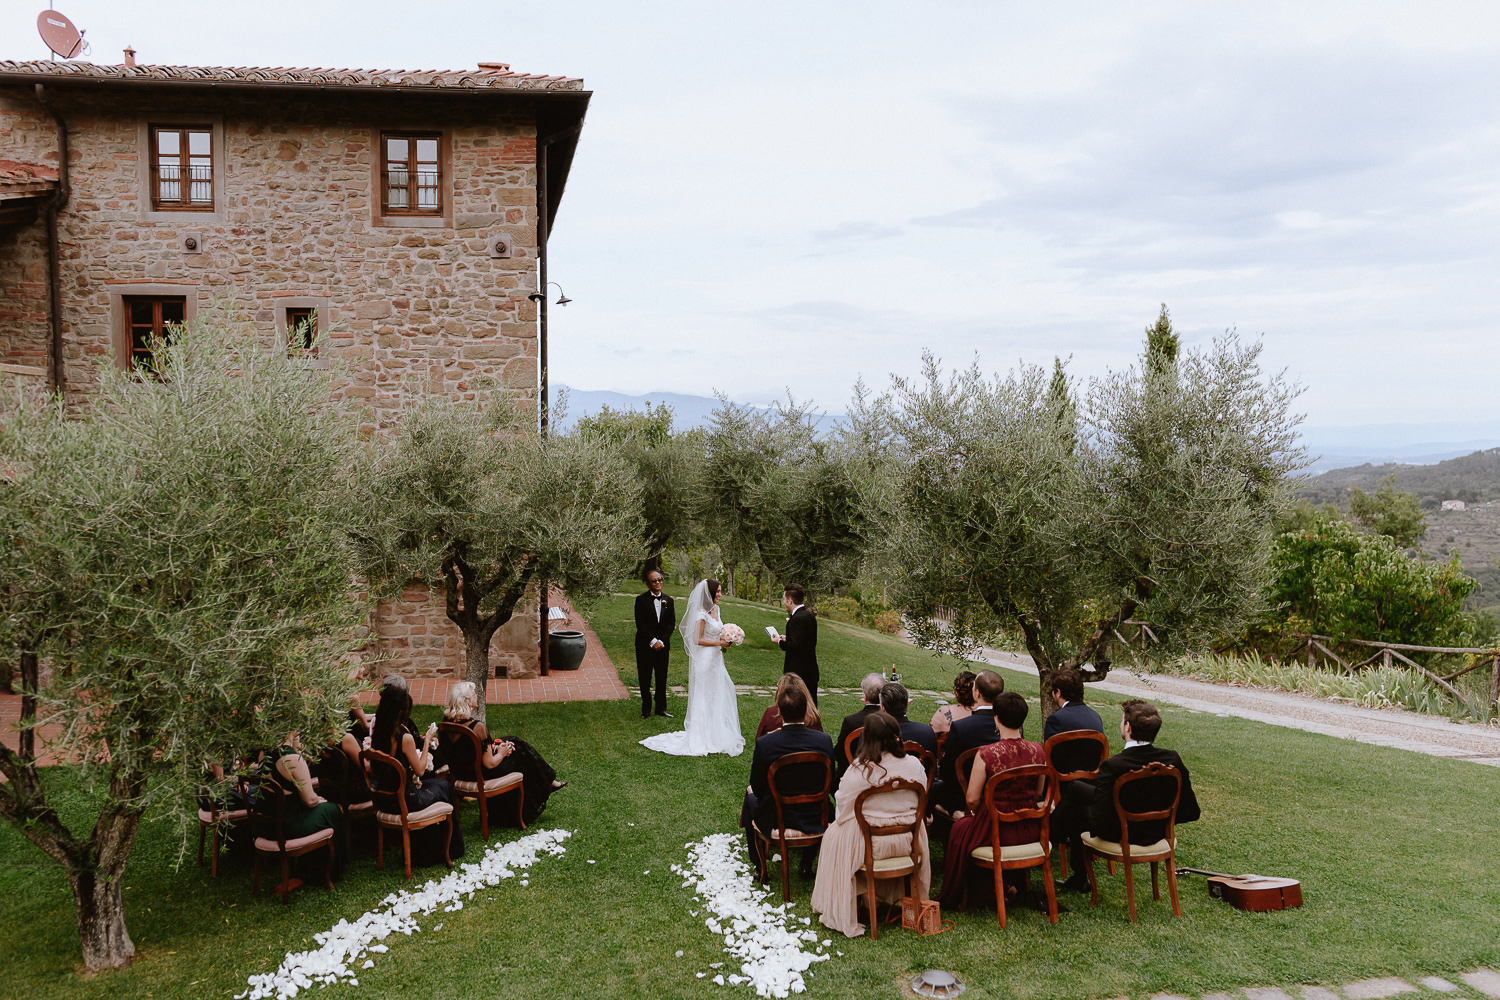 intimate wedding private villa tuscany photographer outdoor wedding ceremony